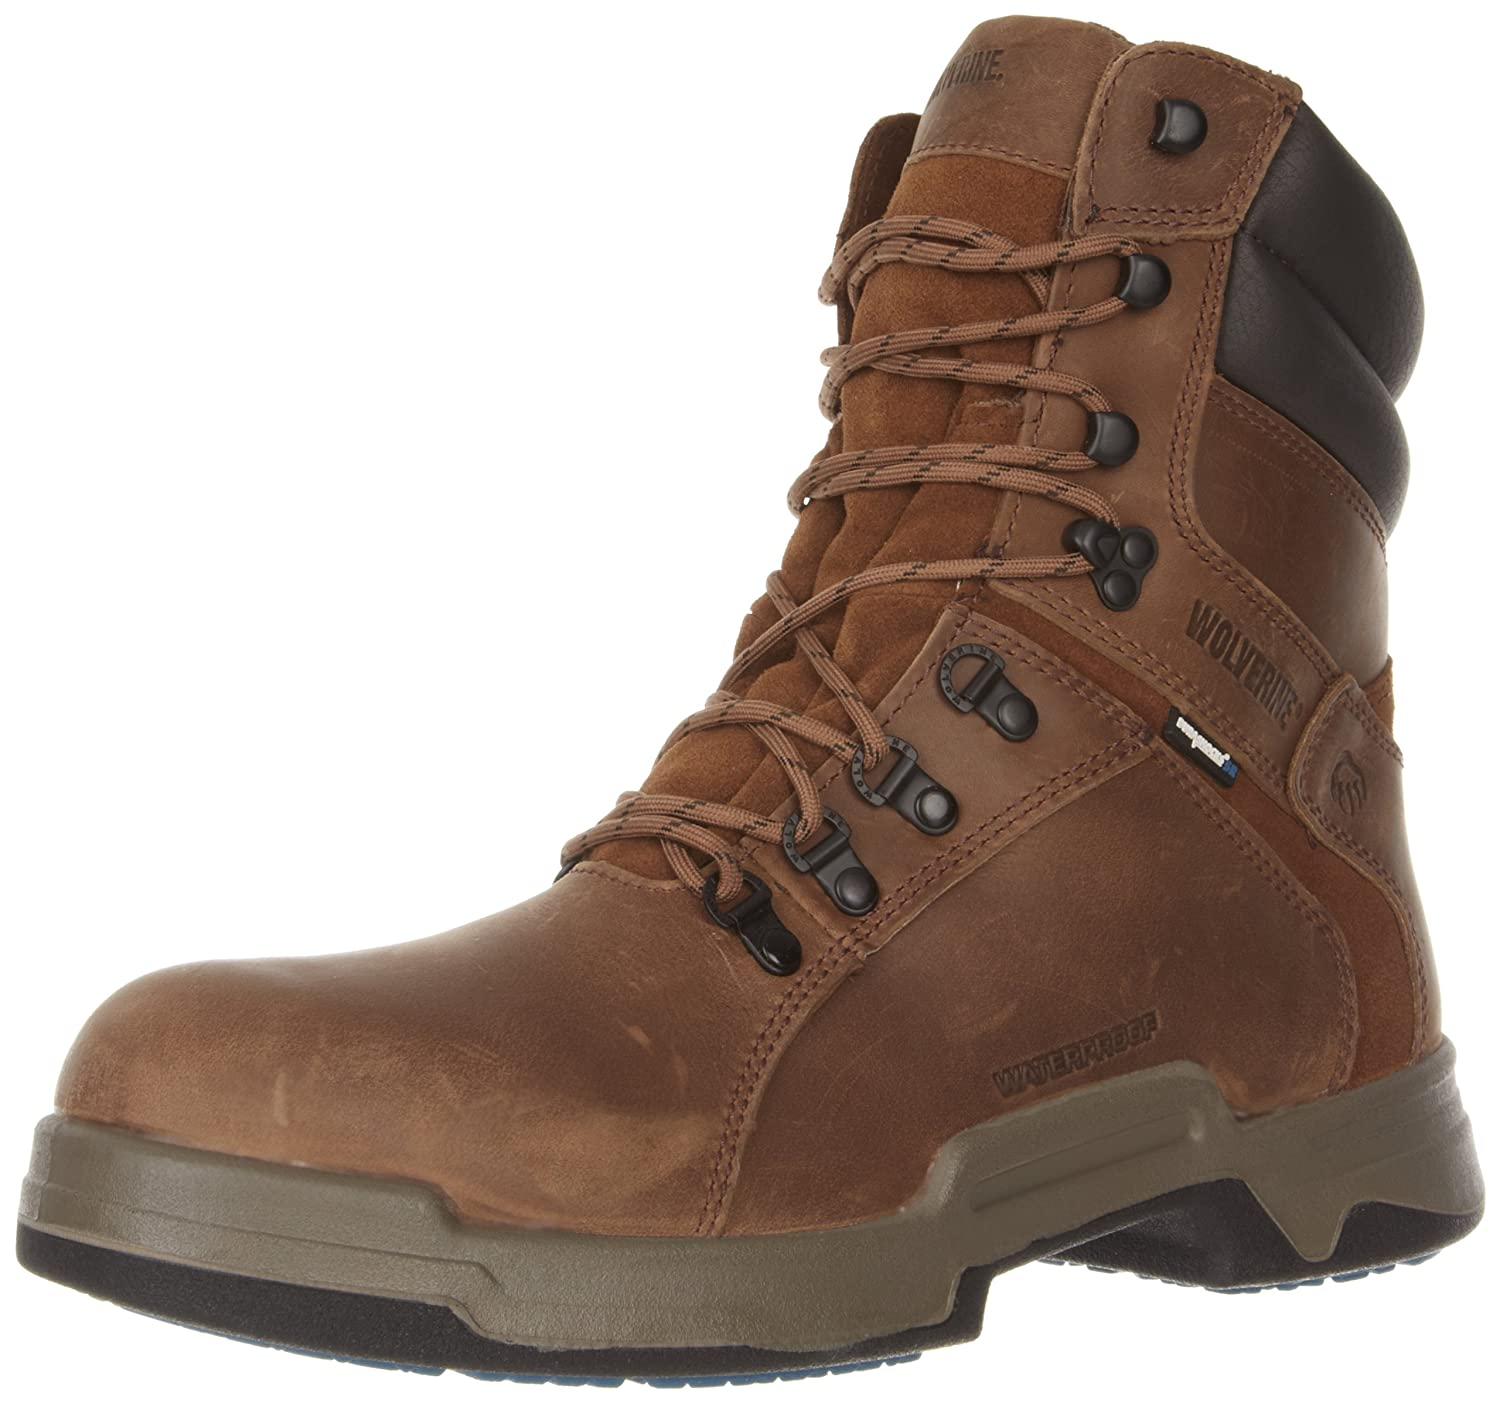 4e09097152e Amazon.com: Wolverine Men's Griffin 8-Inch Waterproof Work Boot: Shoes